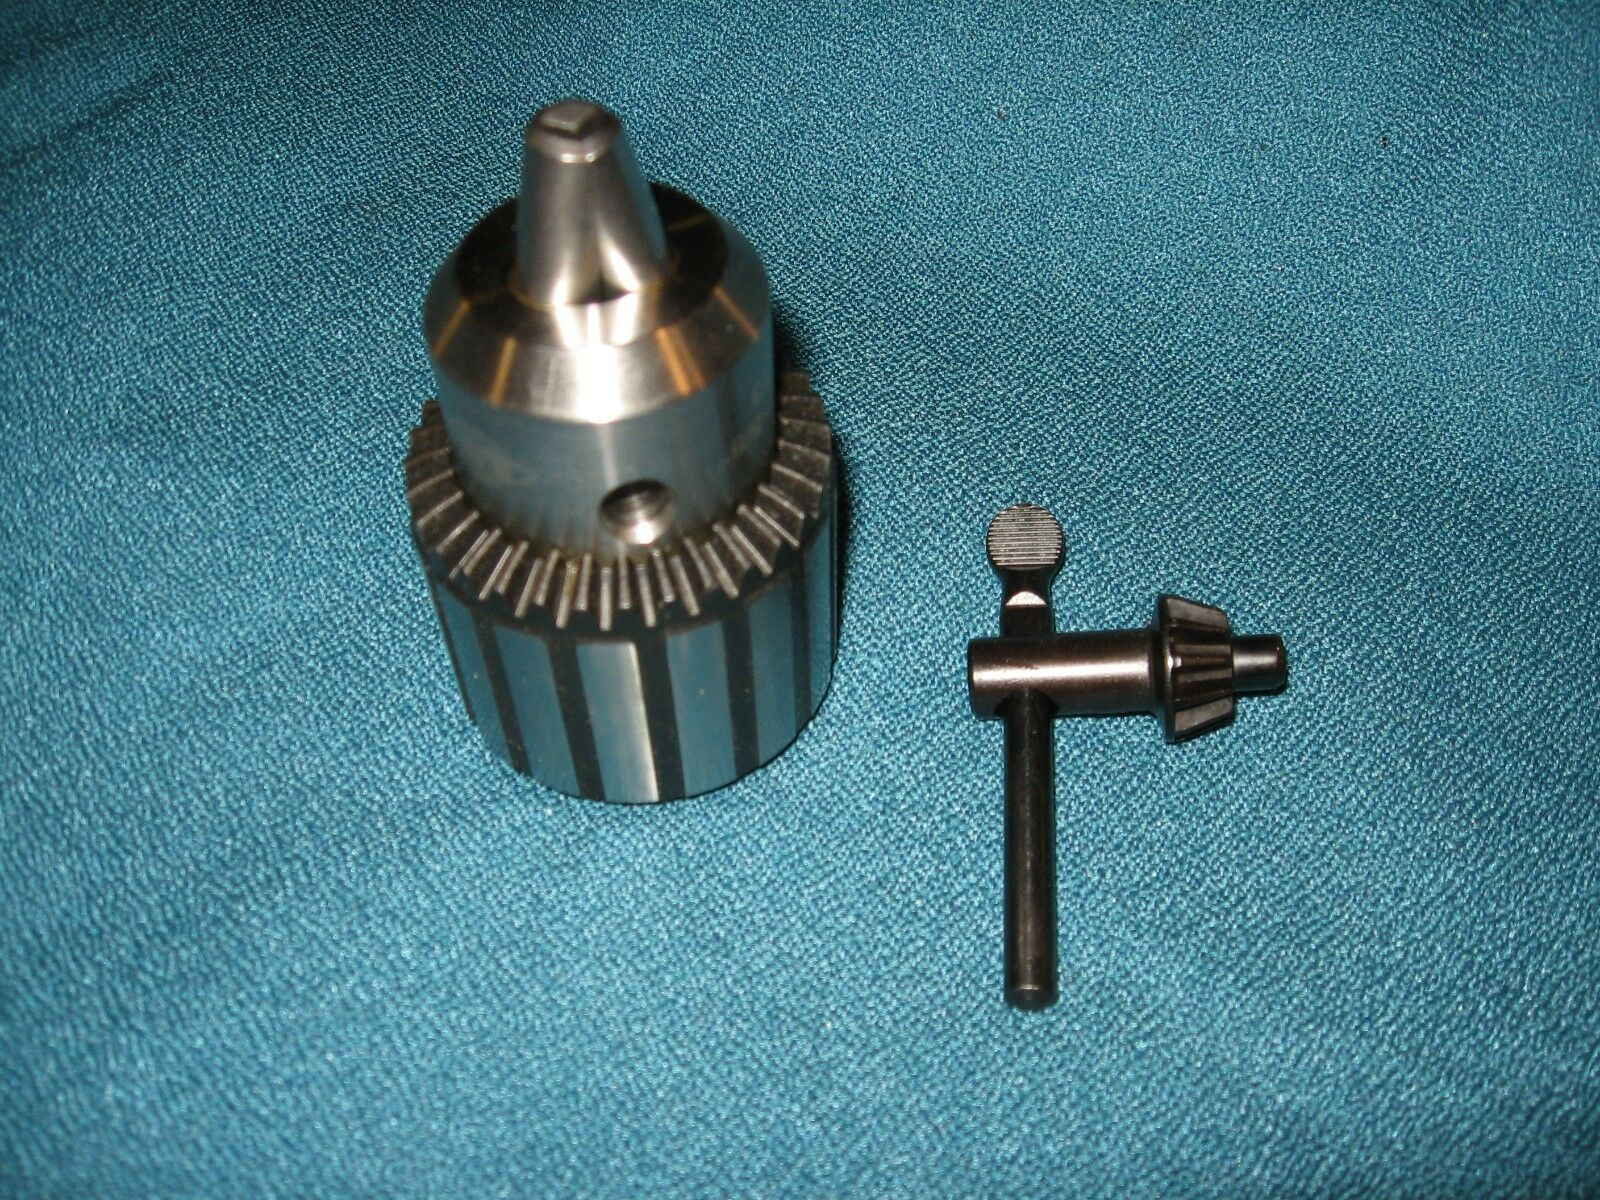 NEW DRILL CHUCK FOR CRAFTSMAN 113.21371 DRILL PRESS  11321371